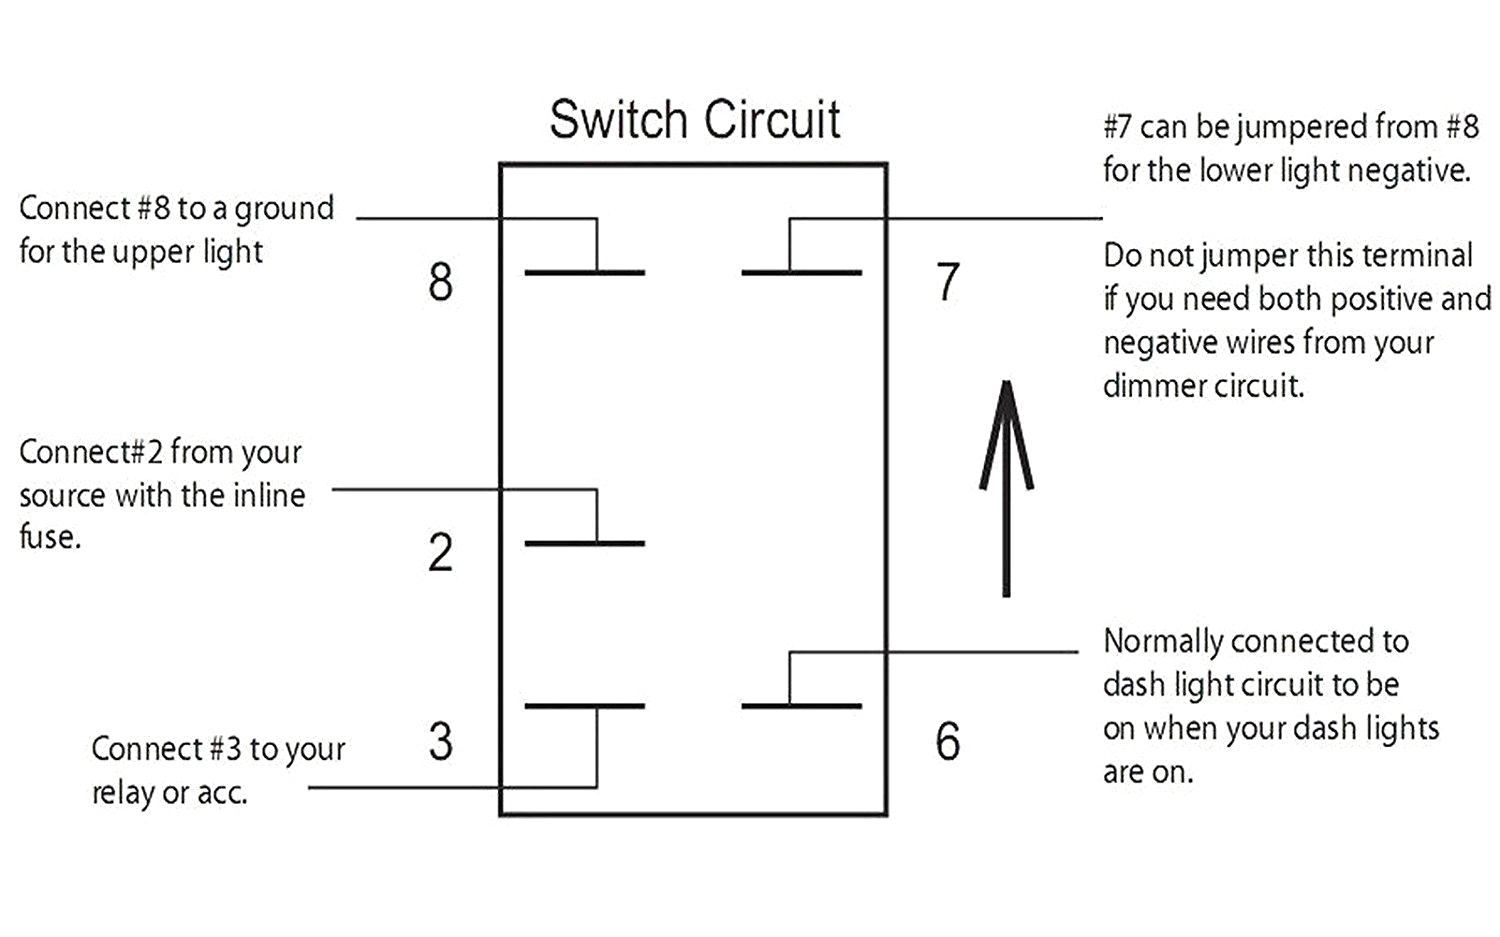 ambulance disconnect switch wiring diagram wiring diagram schematicscarling switches wiring diagram wiring schematic diagram ac disconnect wiring ambulance disconnect switch wiring diagram